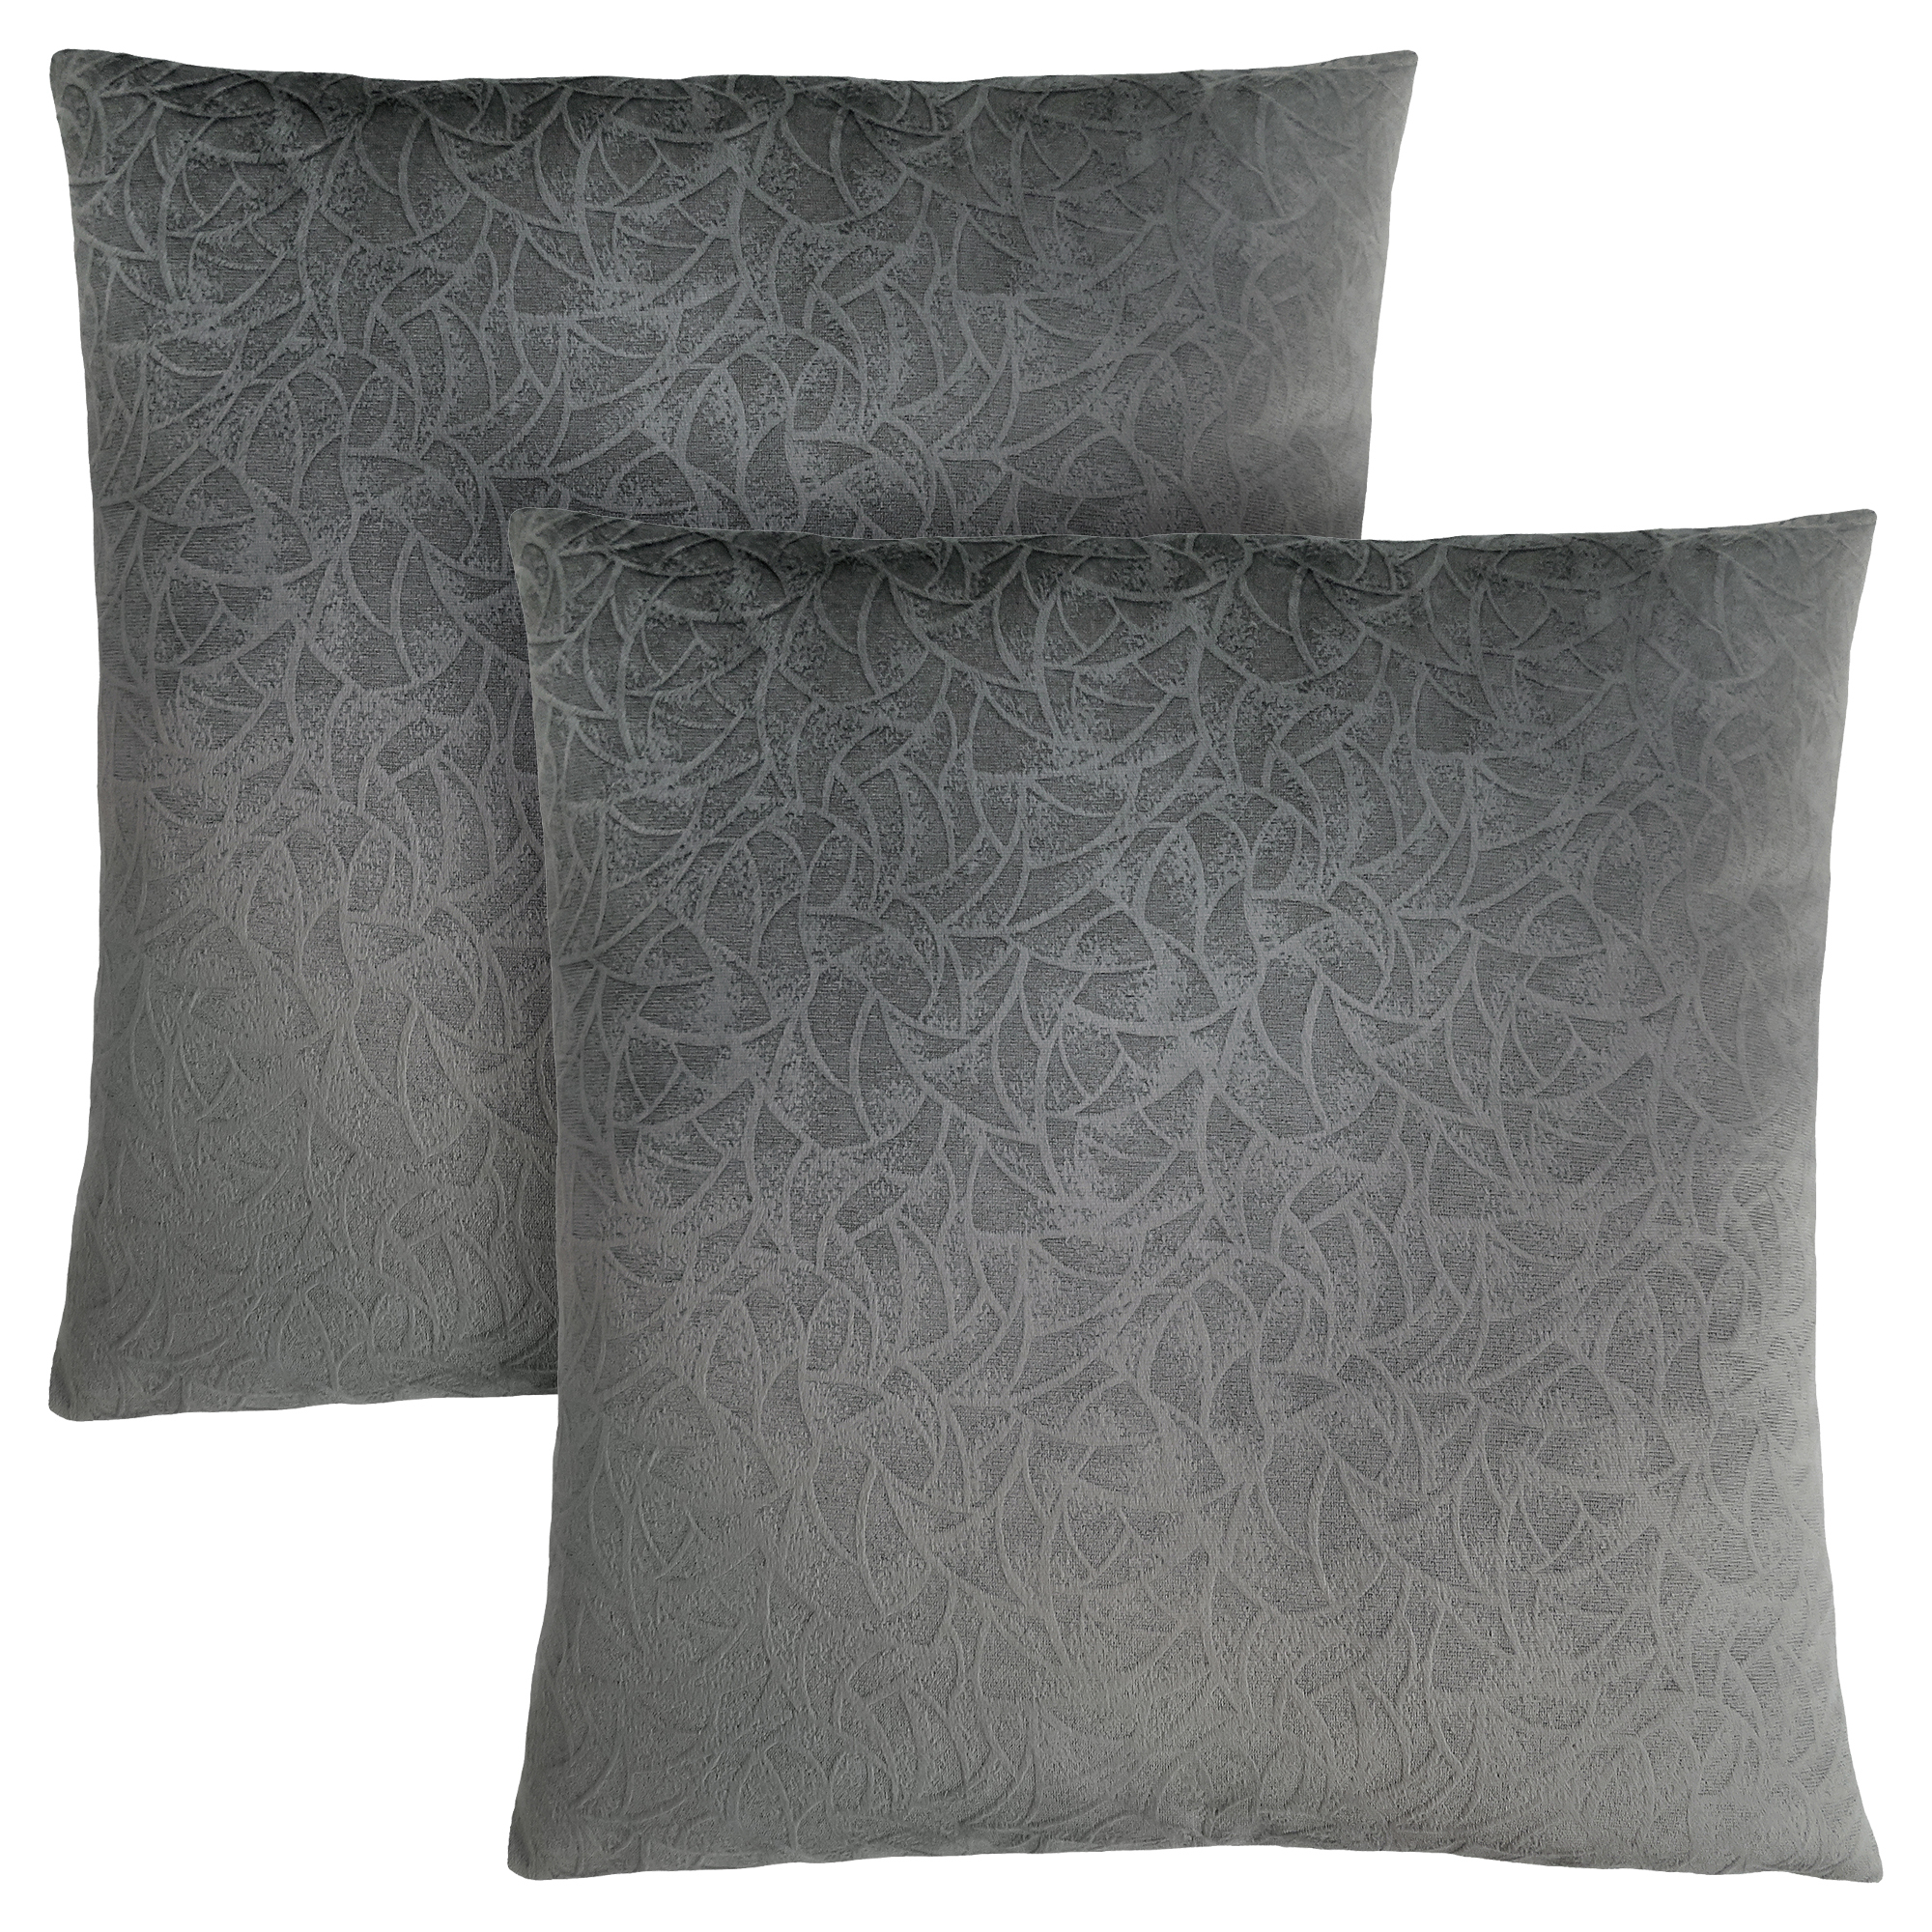 "PILLOW - 18""X 18"" / DARK GREY FLORAL VELVET / 2PCS"